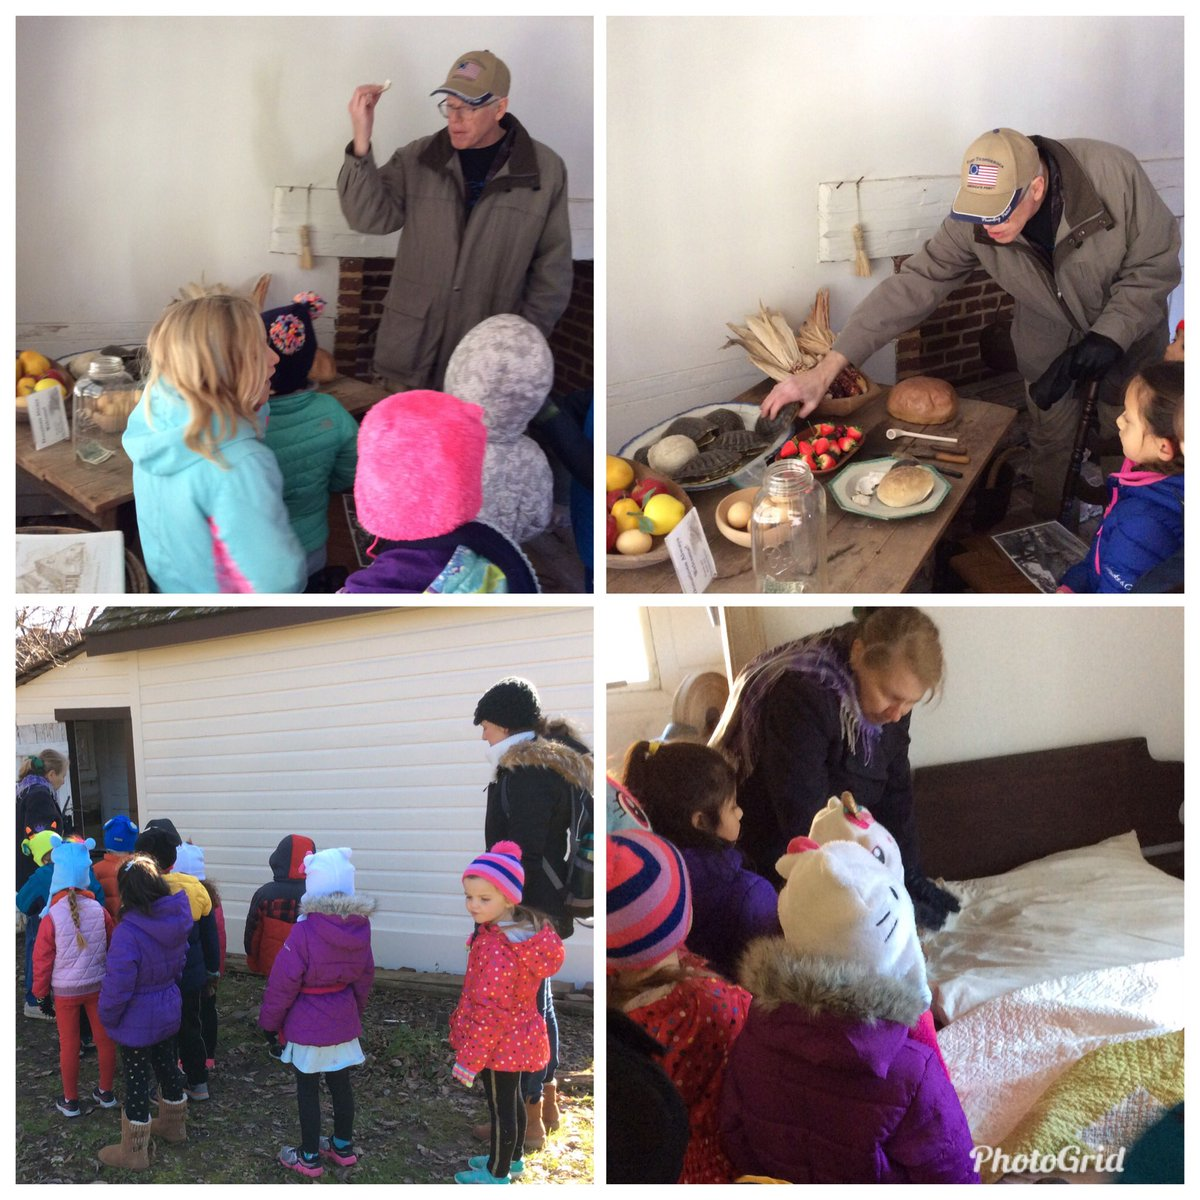 A chilly but wonderful day at the Ball-Sellers House in Glencarlyn on Friday with some curious Kindergartners asking great questions about life in the past, a terrific way to end the week <a target='_blank' href='http://twitter.com/CampbellAPS'>@CampbellAPS</a> <a target='_blank' href='http://twitter.com/CampbellOutside'>@CampbellOutside</a> <a target='_blank' href='https://t.co/rtAK3irvVi'>https://t.co/rtAK3irvVi</a>